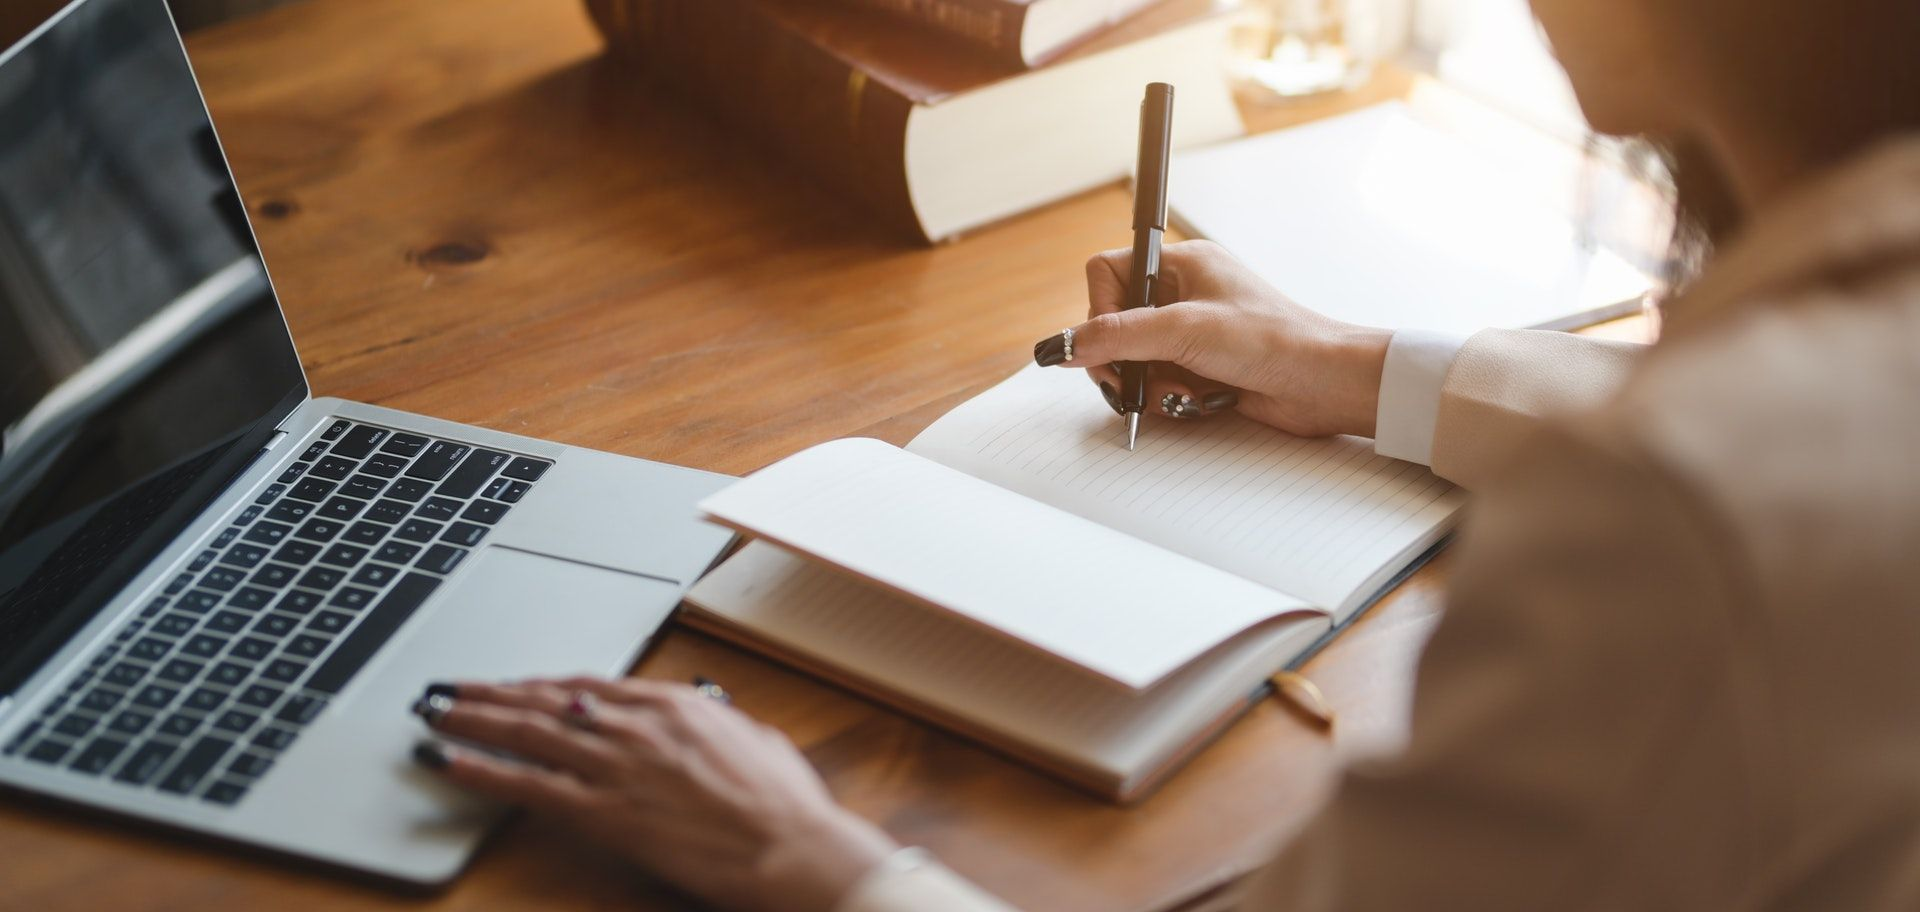 Our 5-step approach to help you write fast and write well in academic environment